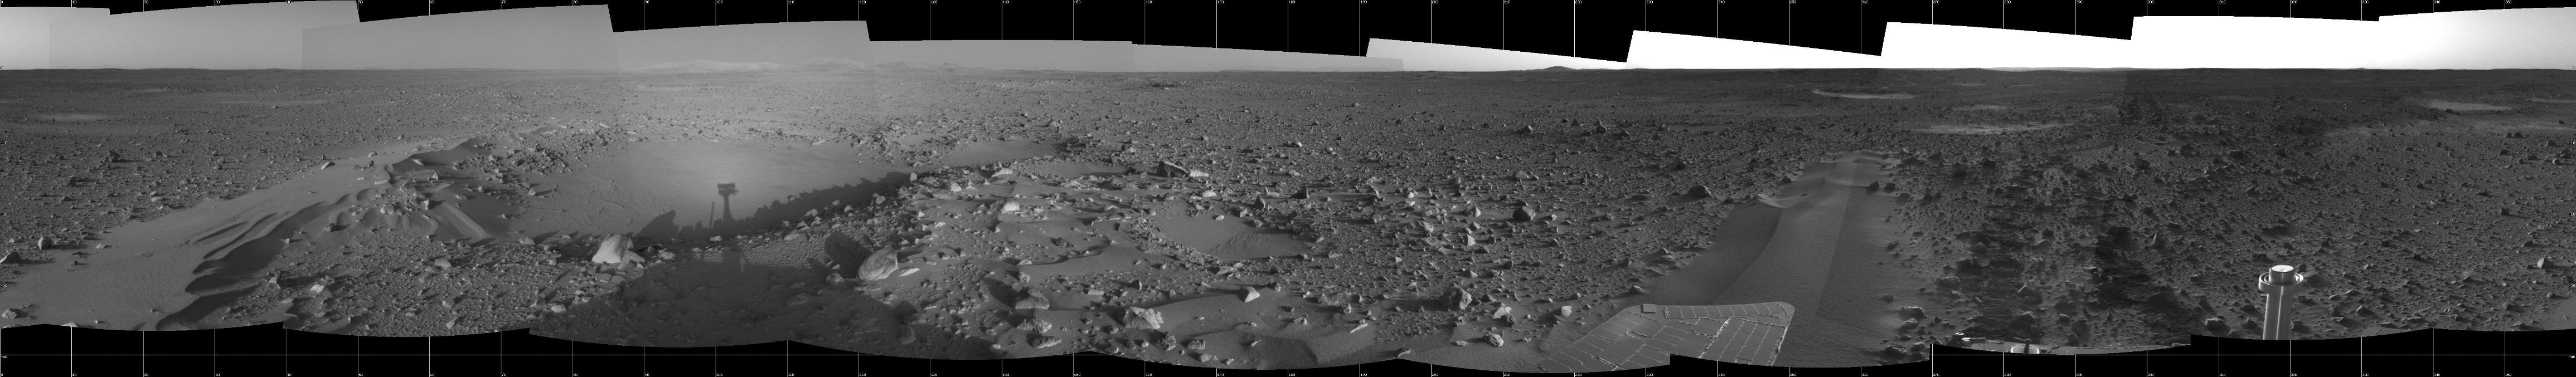 This image highlights the bumpy terrain surrounding the rover.